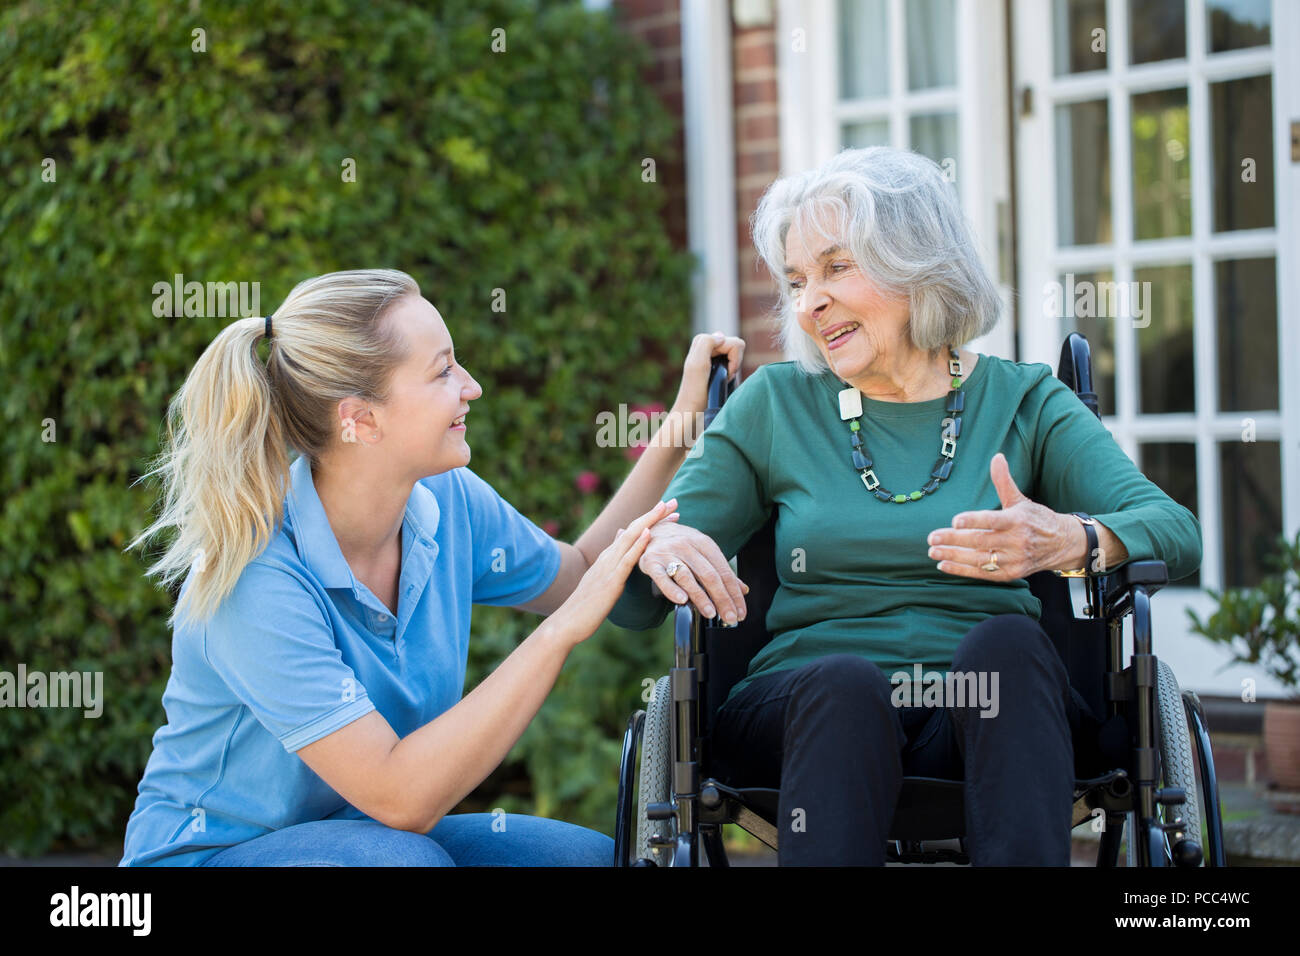 Carer Pushing Senior Woman In Wheelchair Outside Home - Stock Image